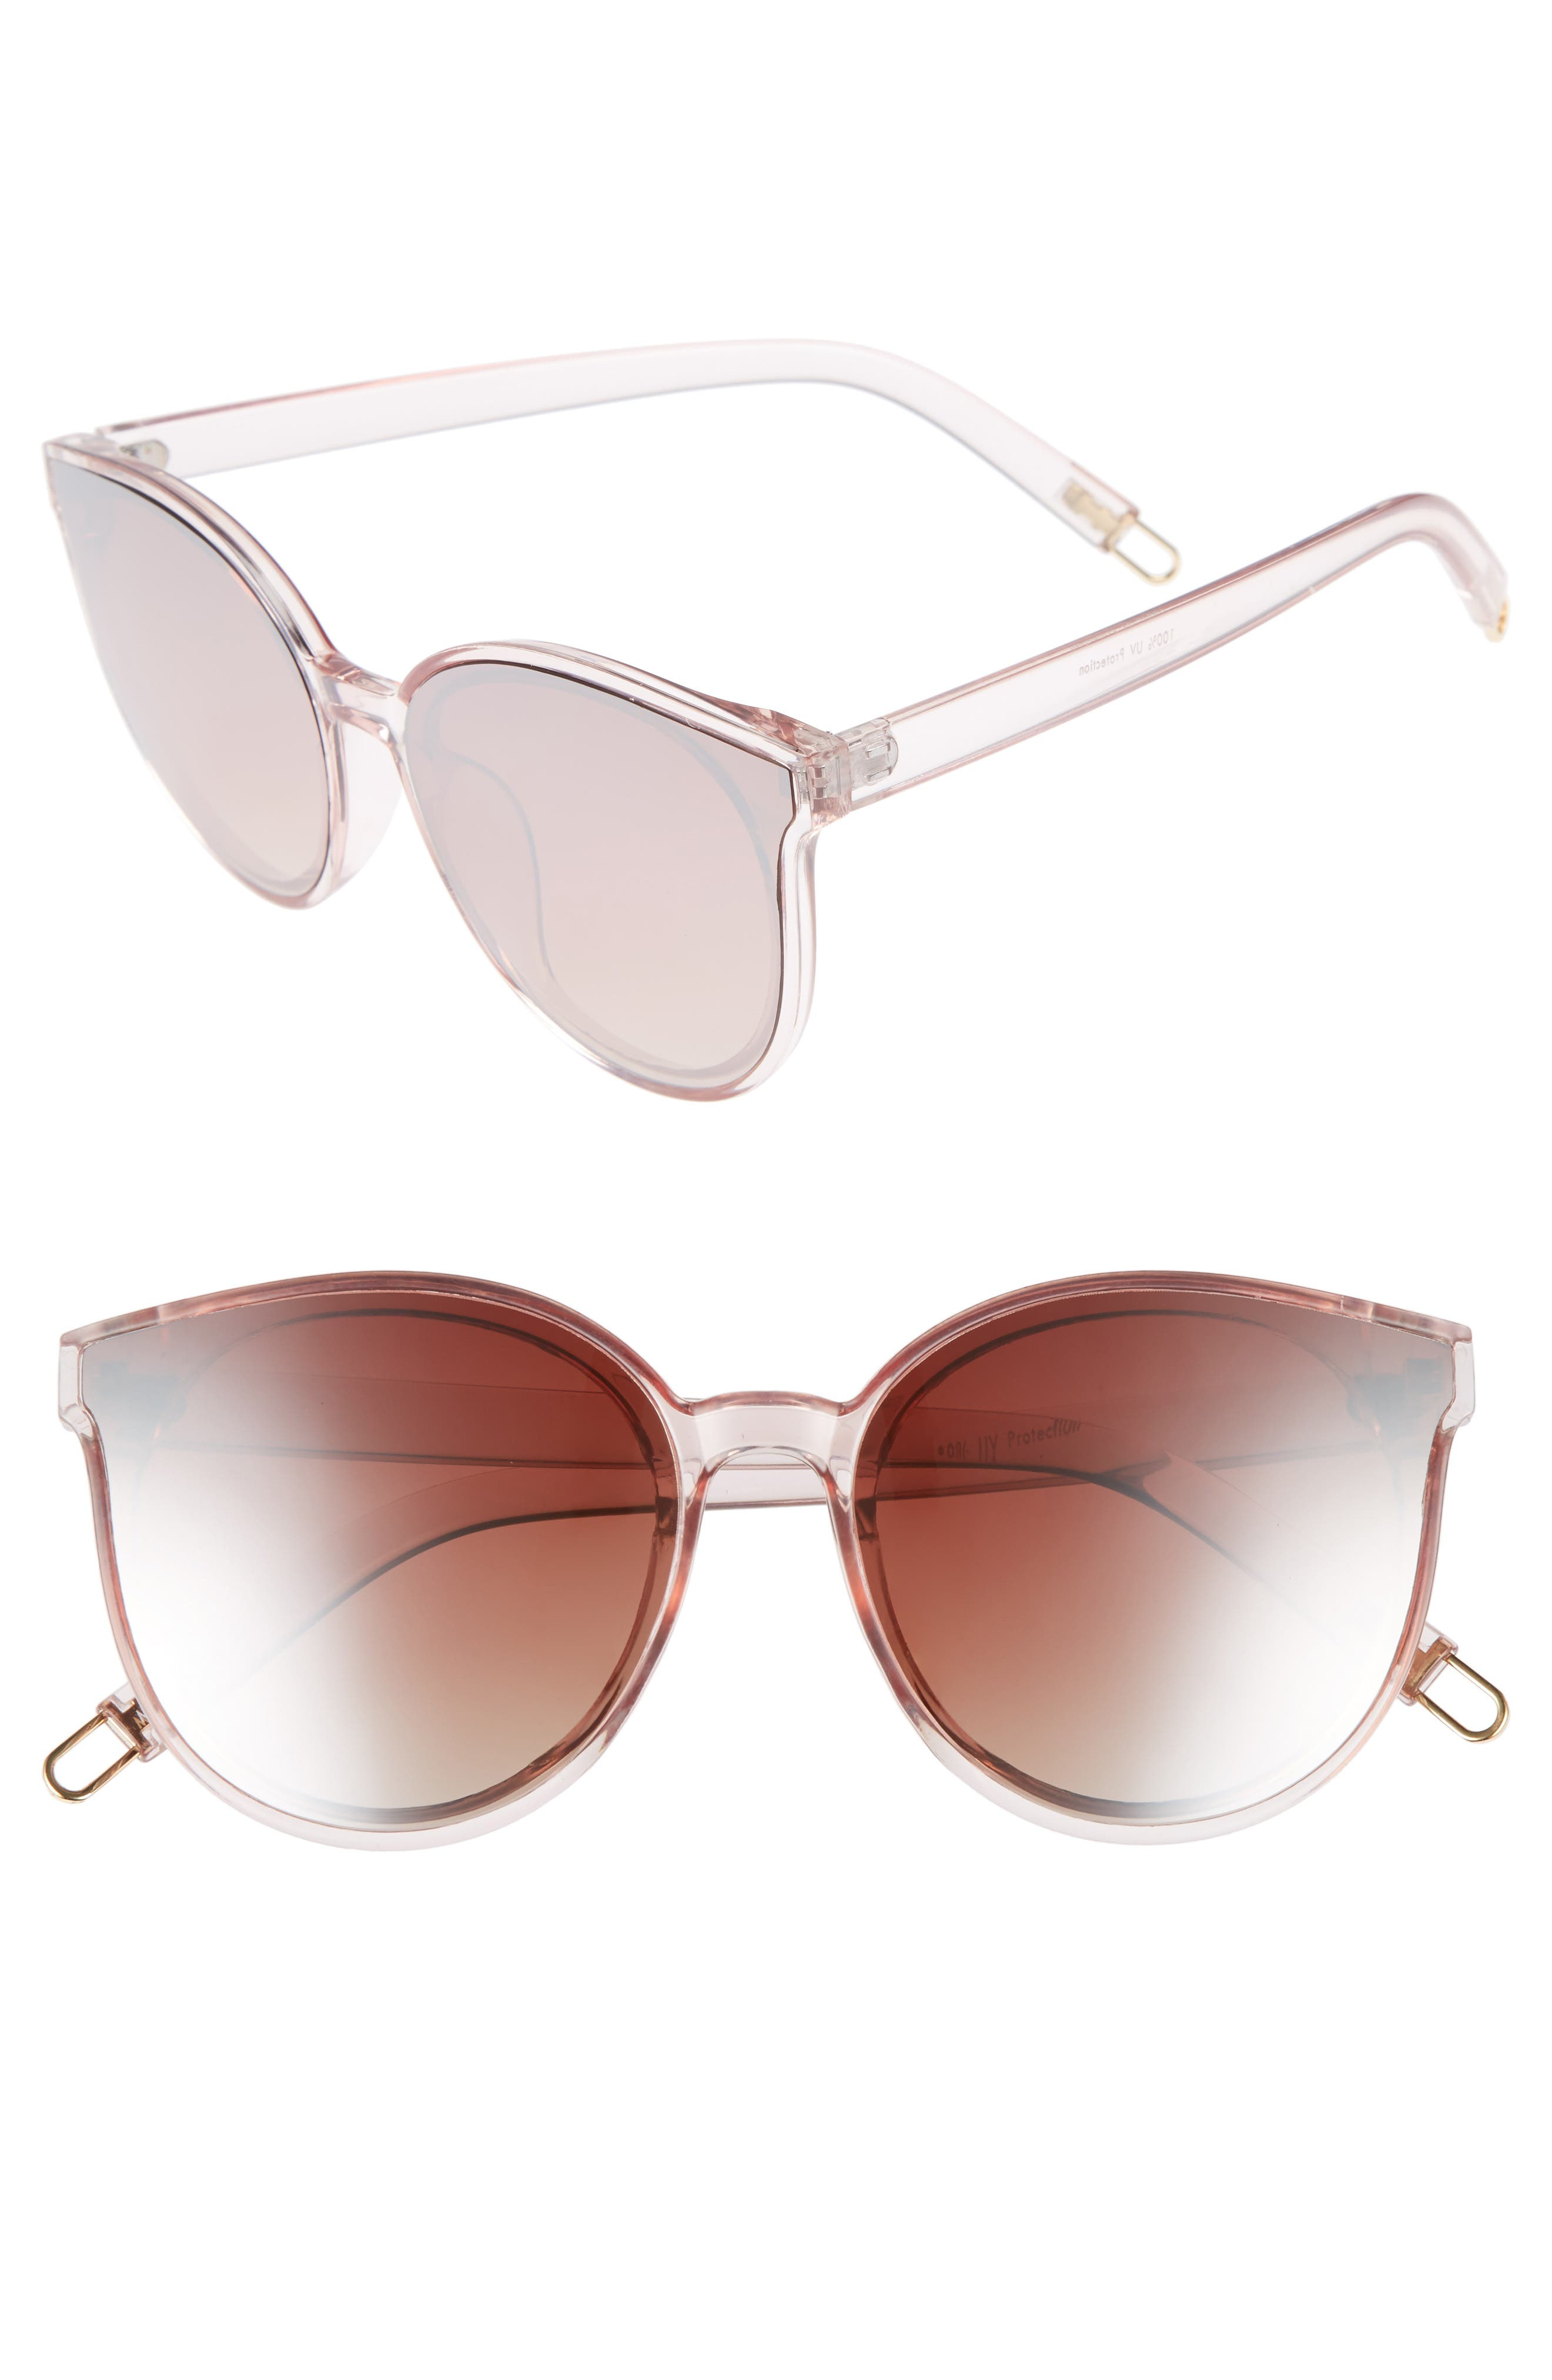 59mm Metal Tip Round Sunglasses,                             Main thumbnail 1, color,                             Clear/ Pink